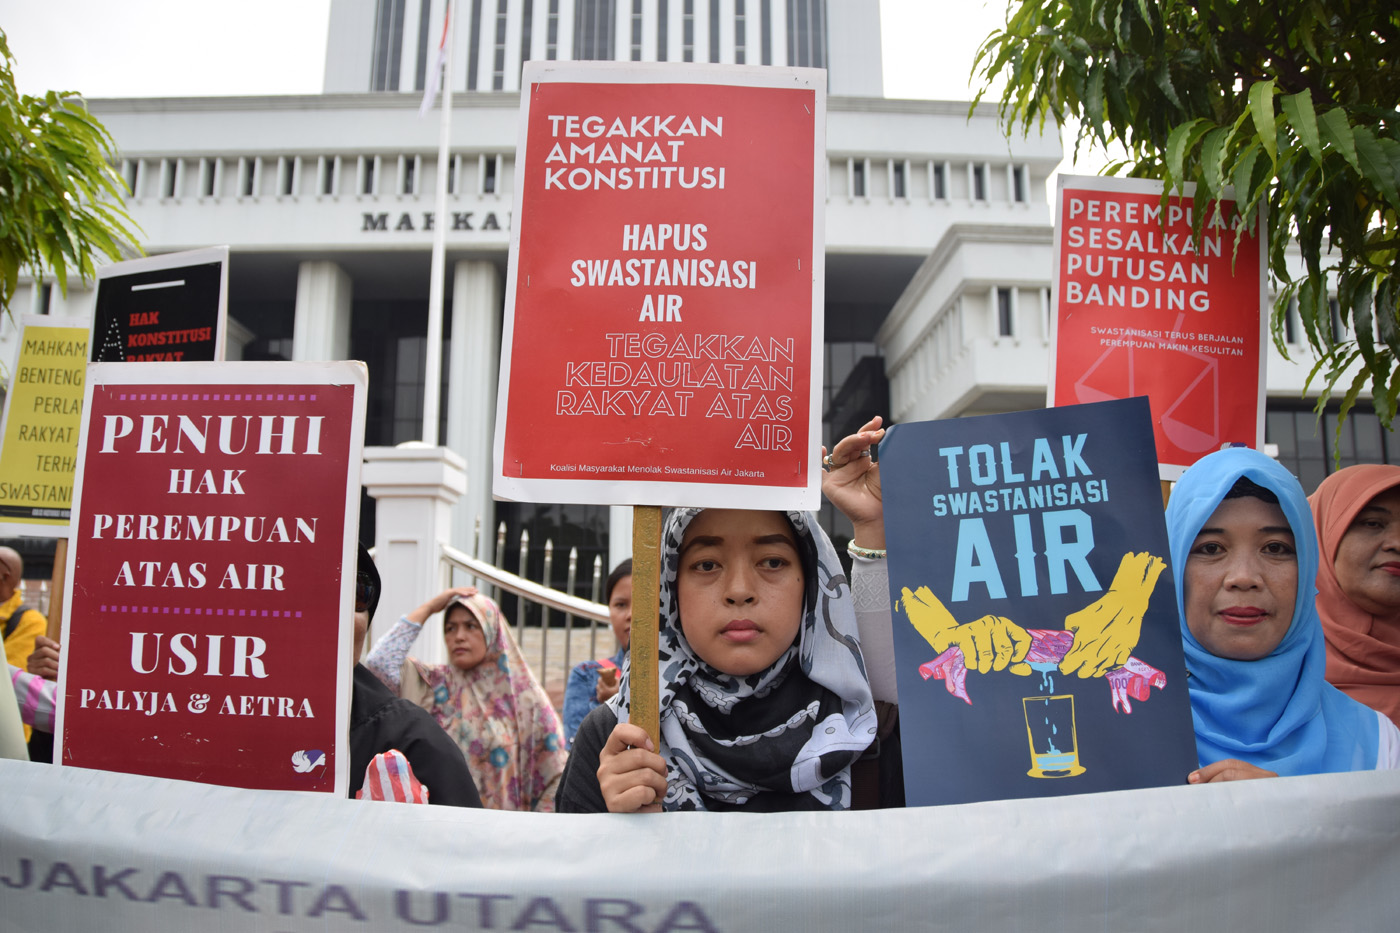 Demo privatisasi air